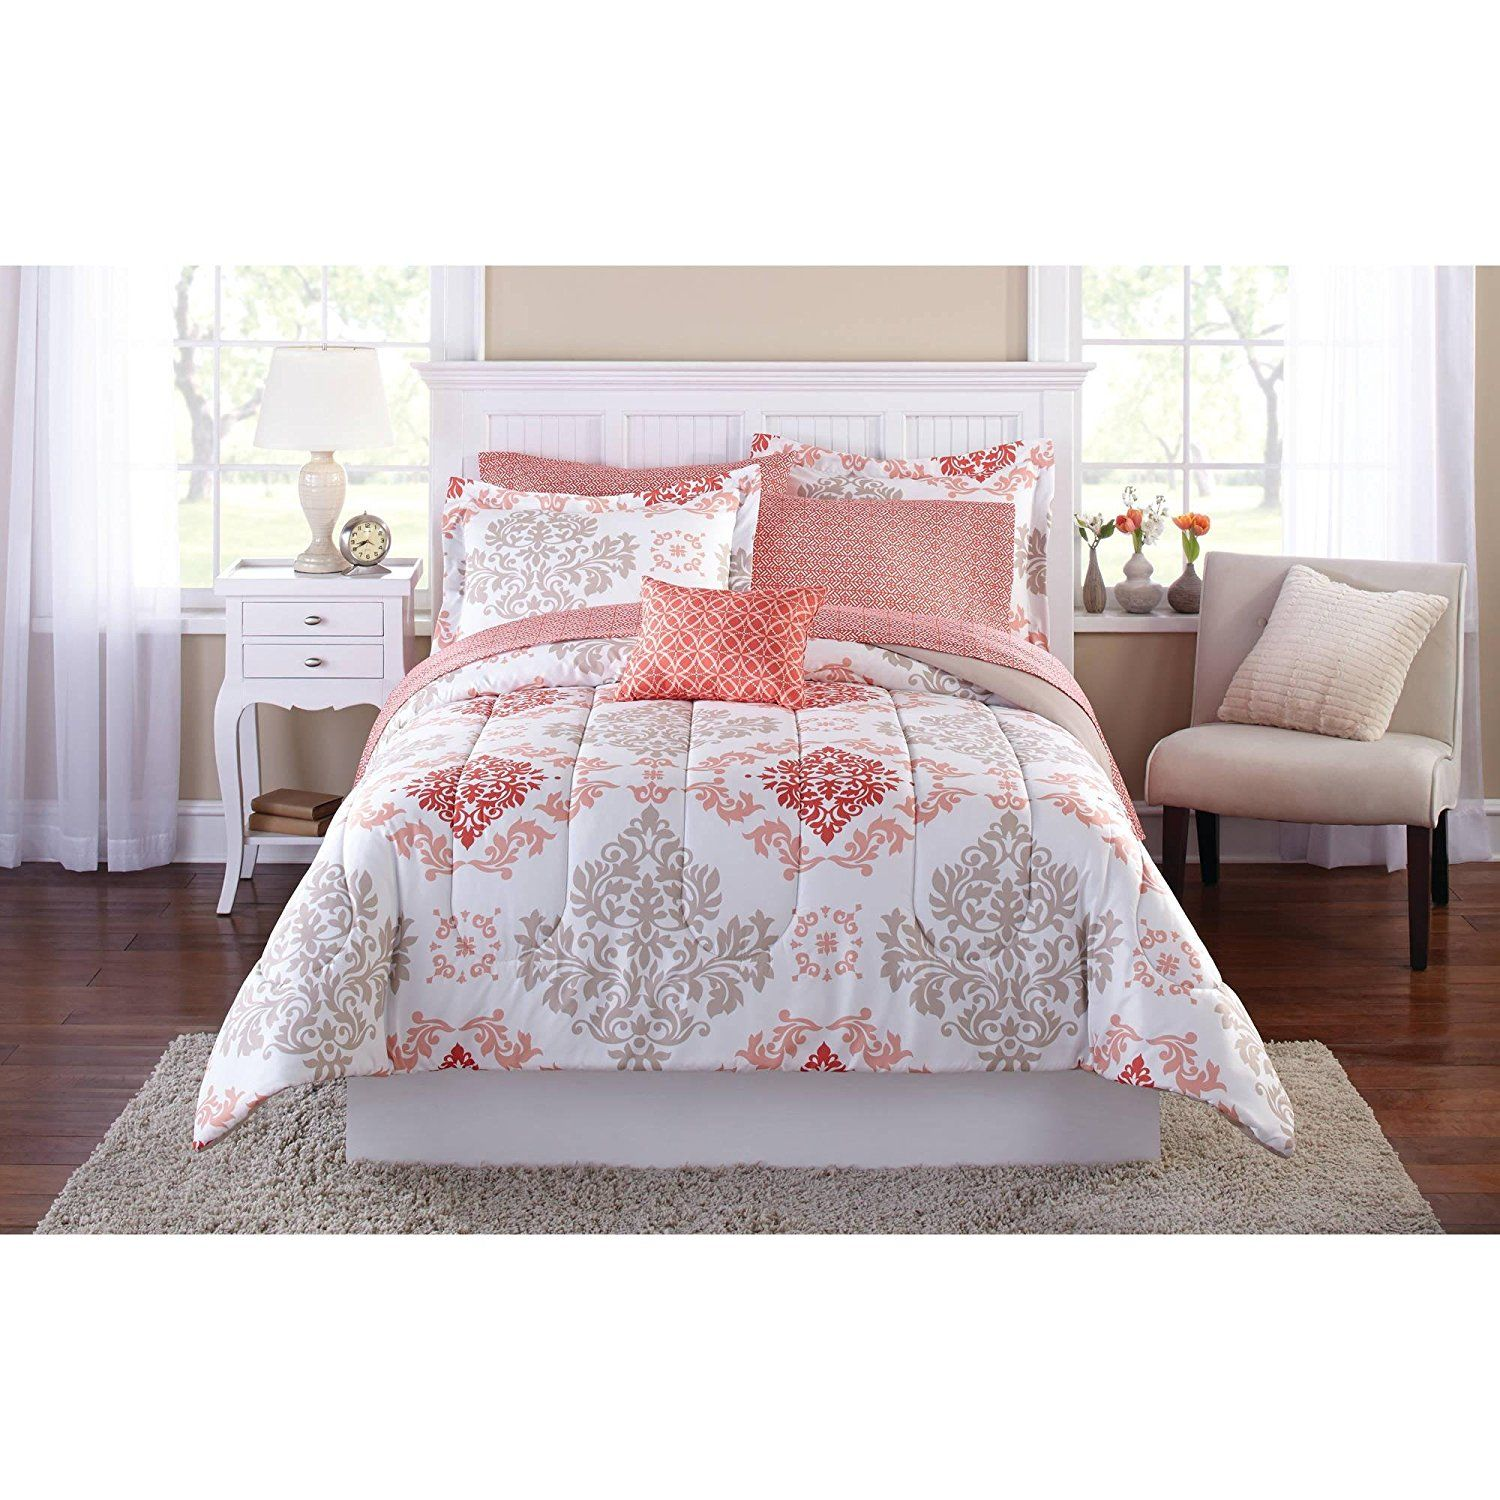 Best Boys Girls Kids Twin Bedding Sets Sale Coral Bedding 640 x 480